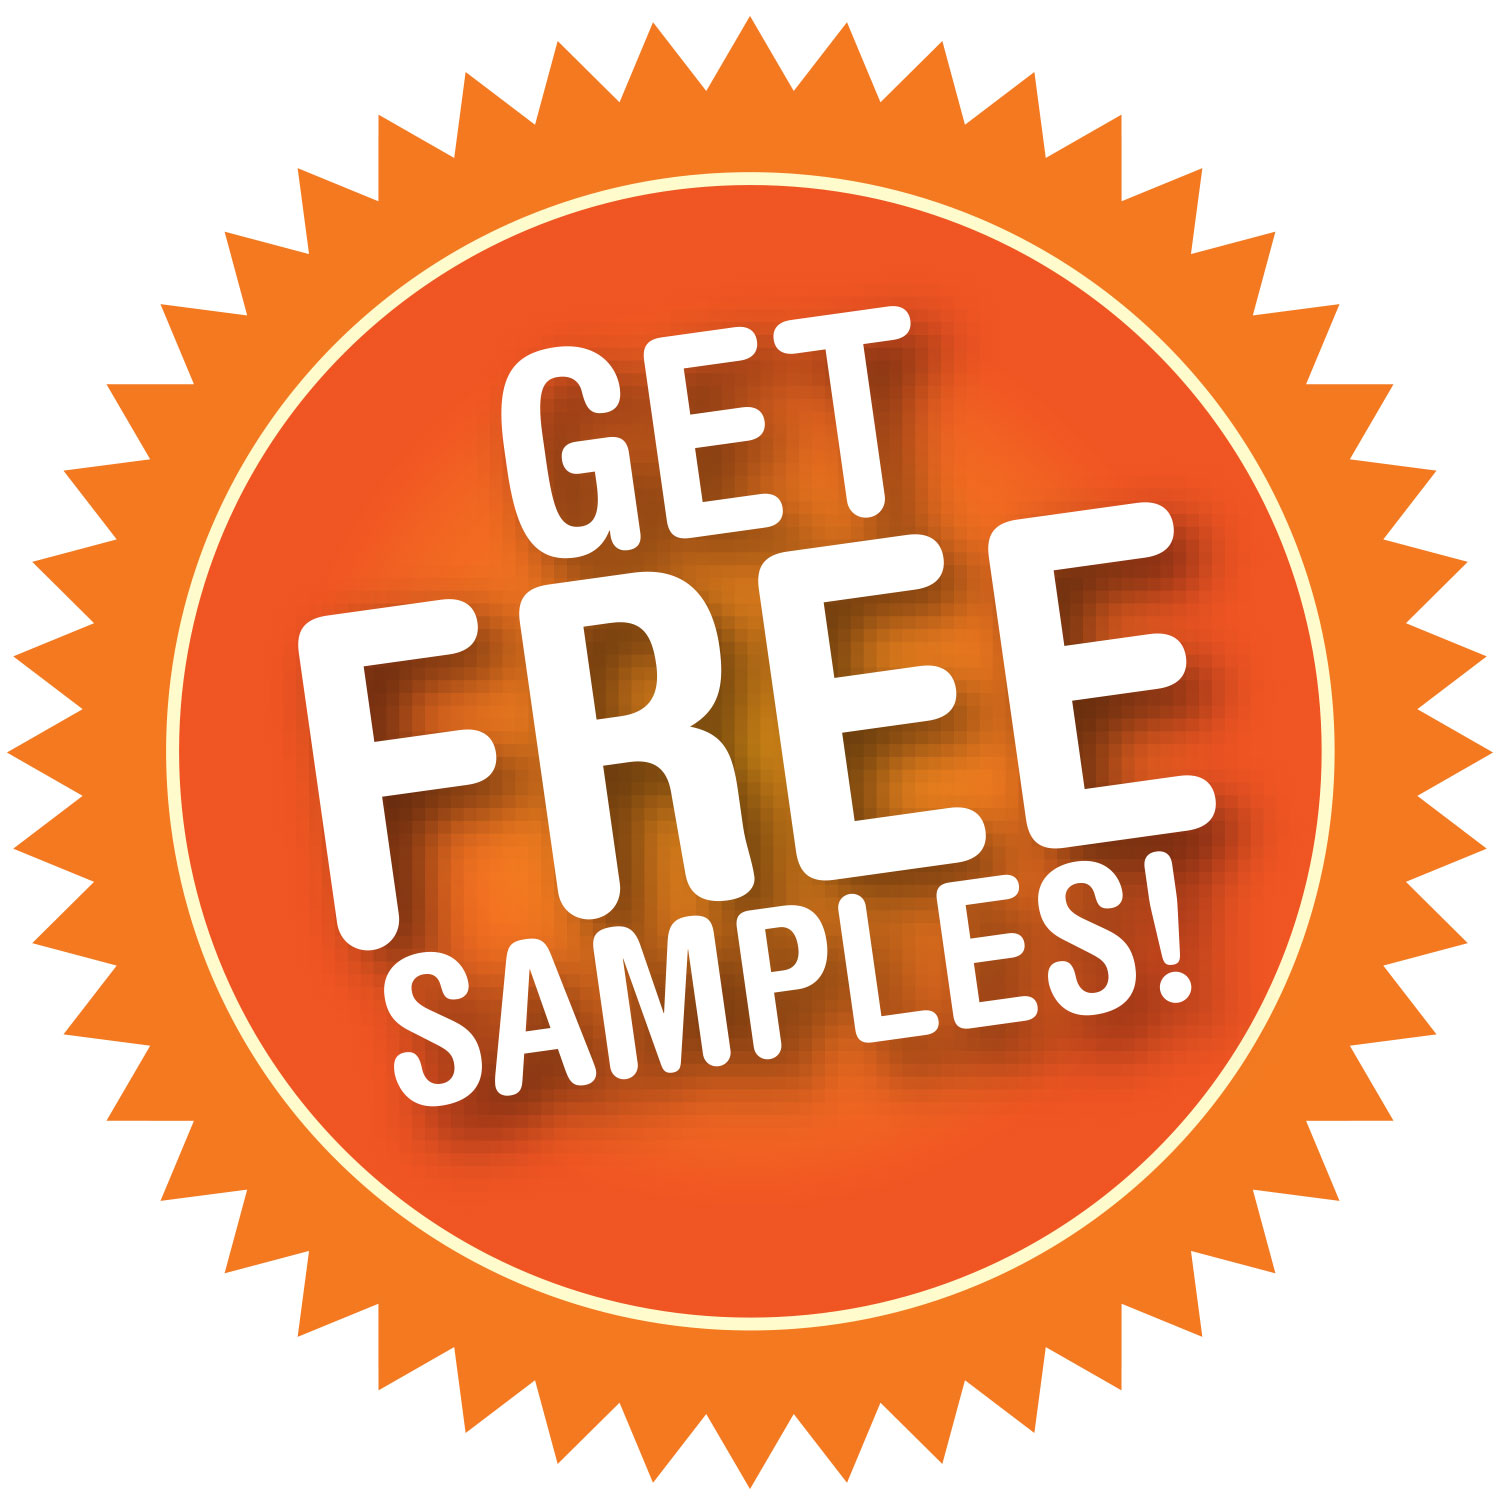 FREE Samples with any purchase